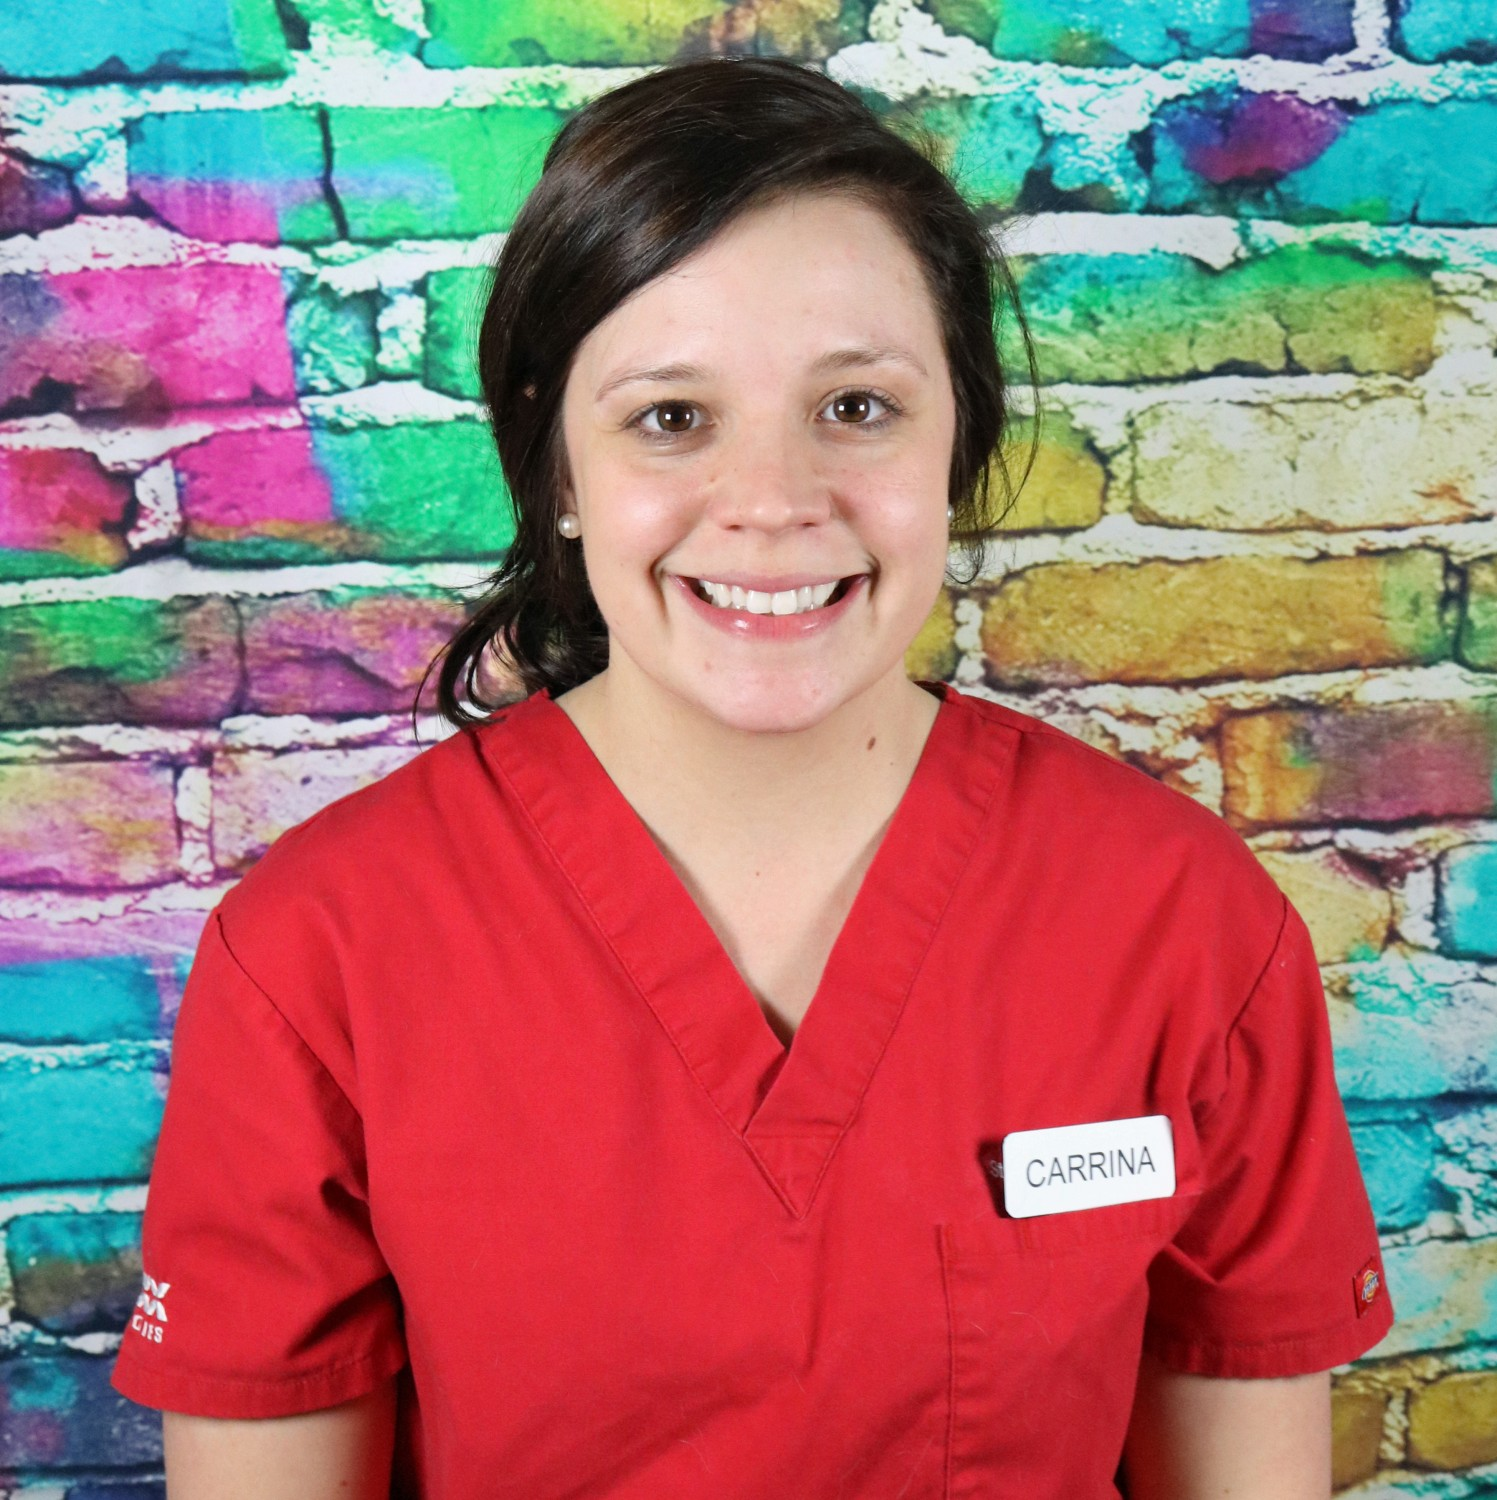 Carrina Echeandia - Veterinary Assistant - Manchester Veterinary Clinic - CT